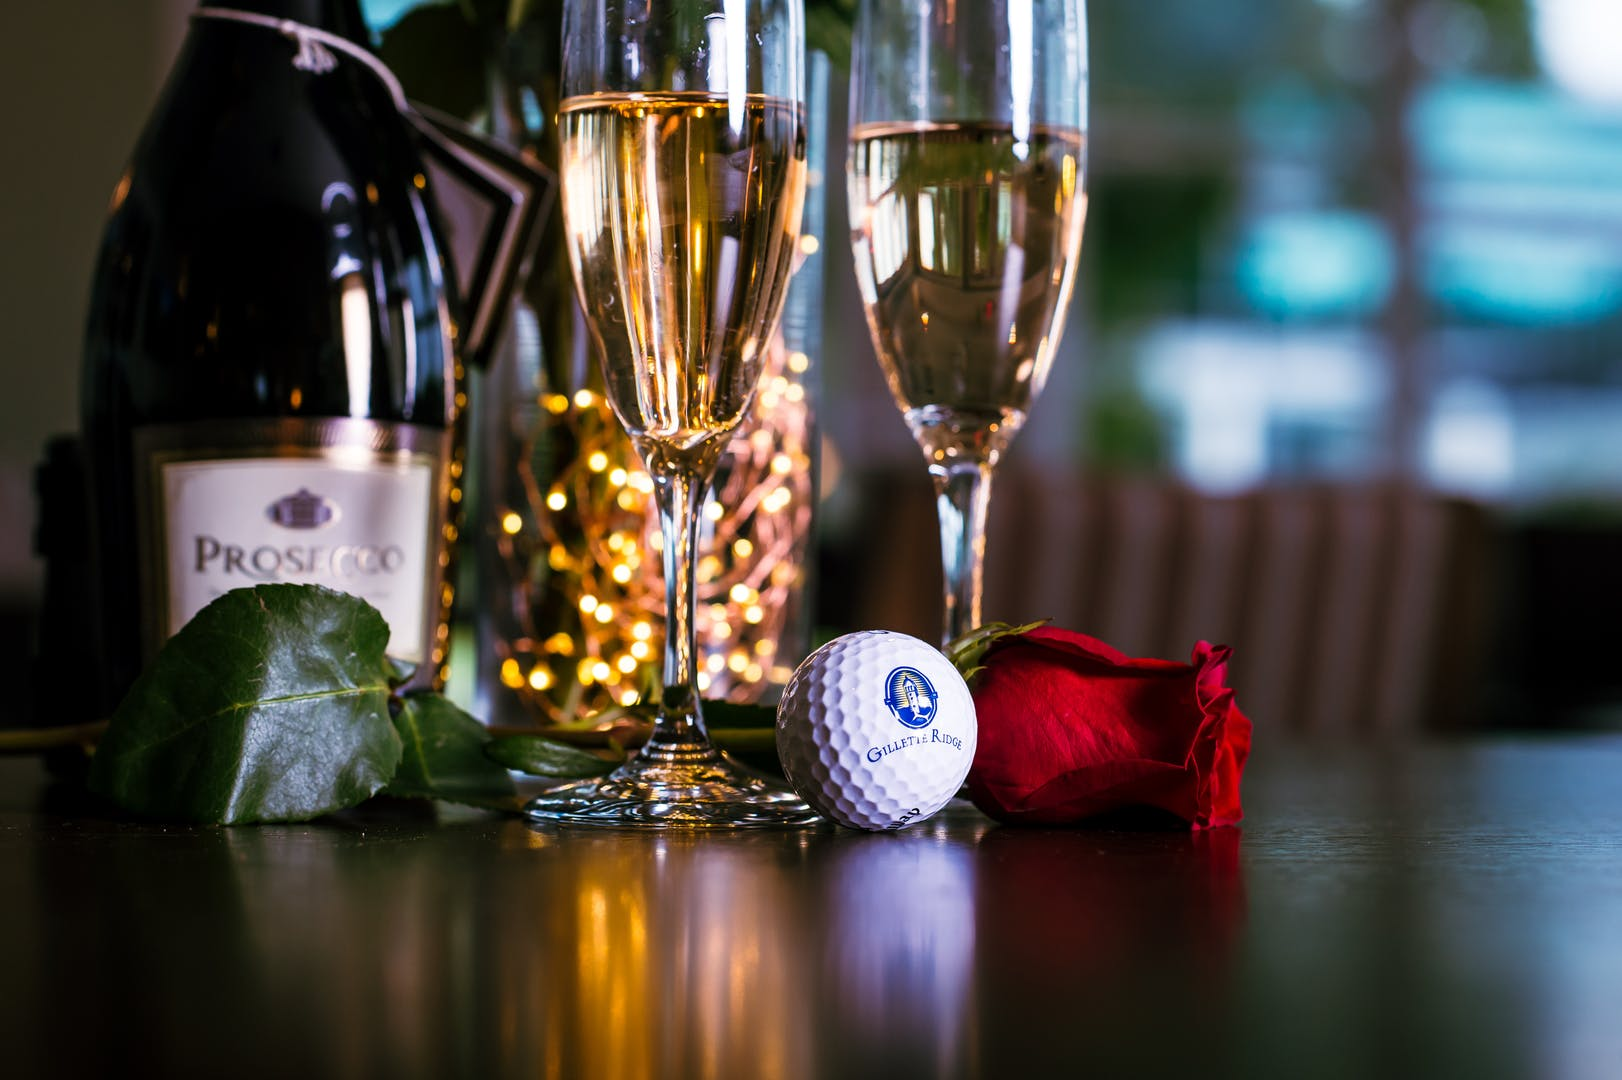 Gillette Ridge logo golf ball, a rose, two flutes of prosecco and a bottle of prosecco arranged on a table.